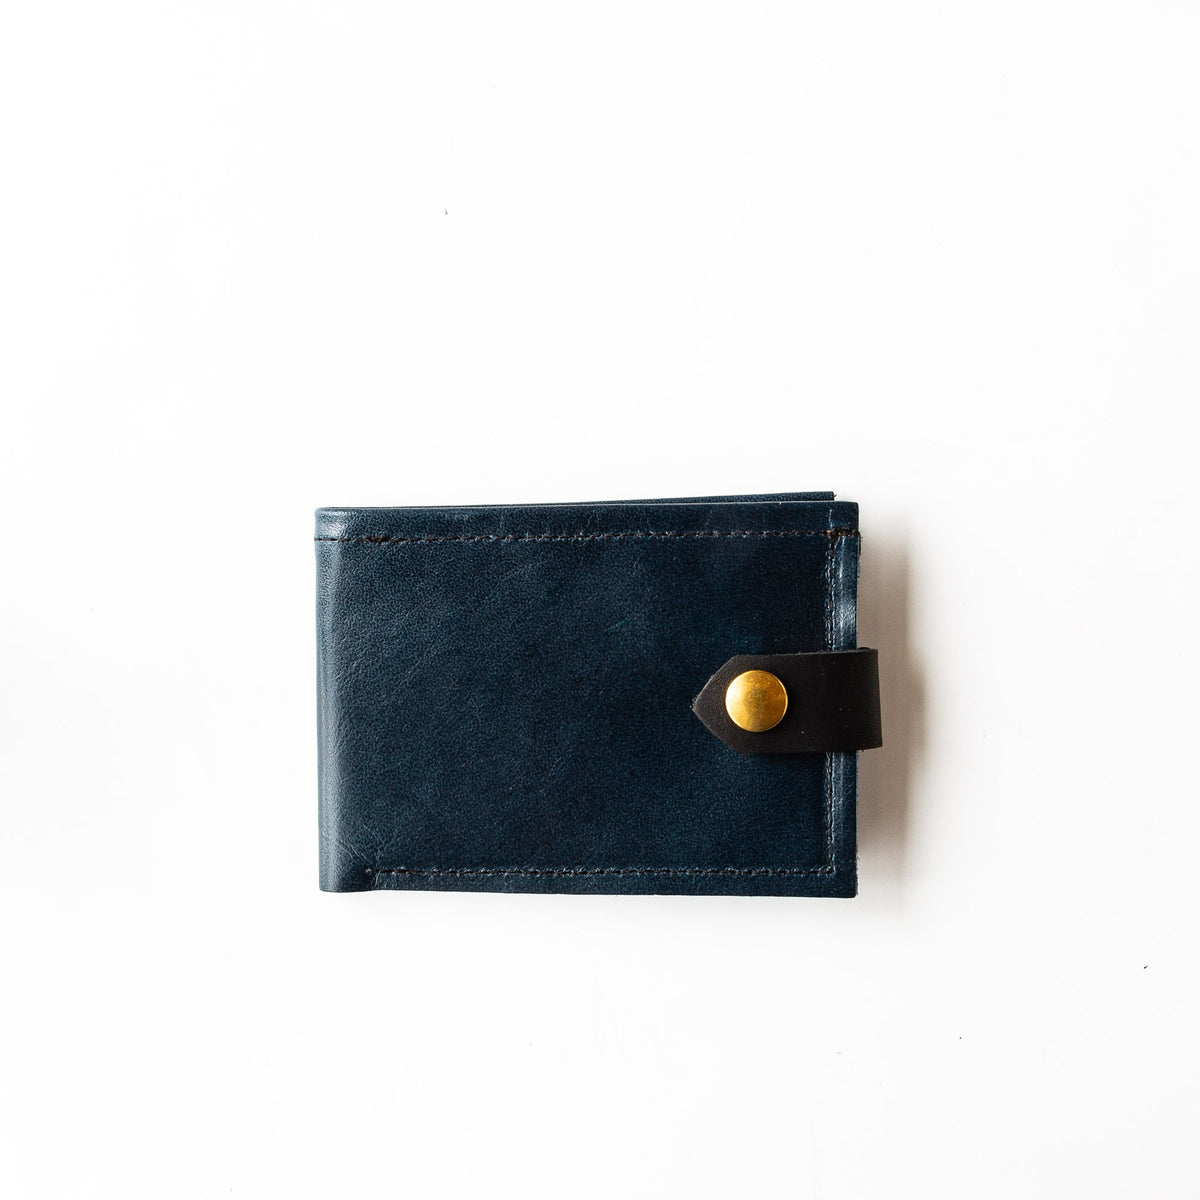 Deep Blue - Oiled Black - St-Joseph - Classic Unisex Wallet / Card Holder - Sold by Chic & Basta